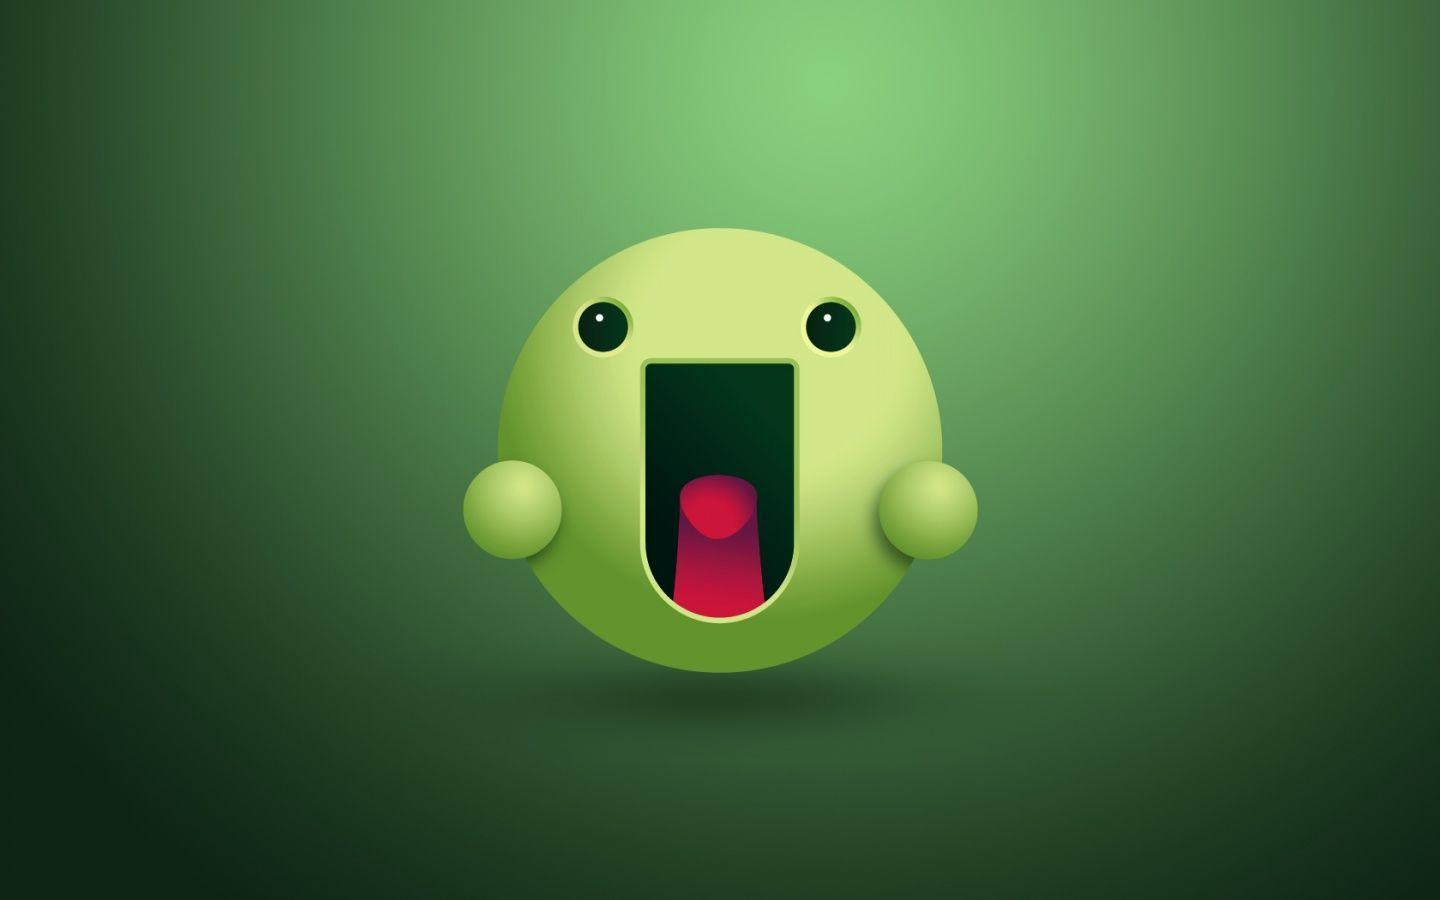 Funny Faces Backgrounds - Wallpaper Cave |Funny Smiley Faces Wallpaper